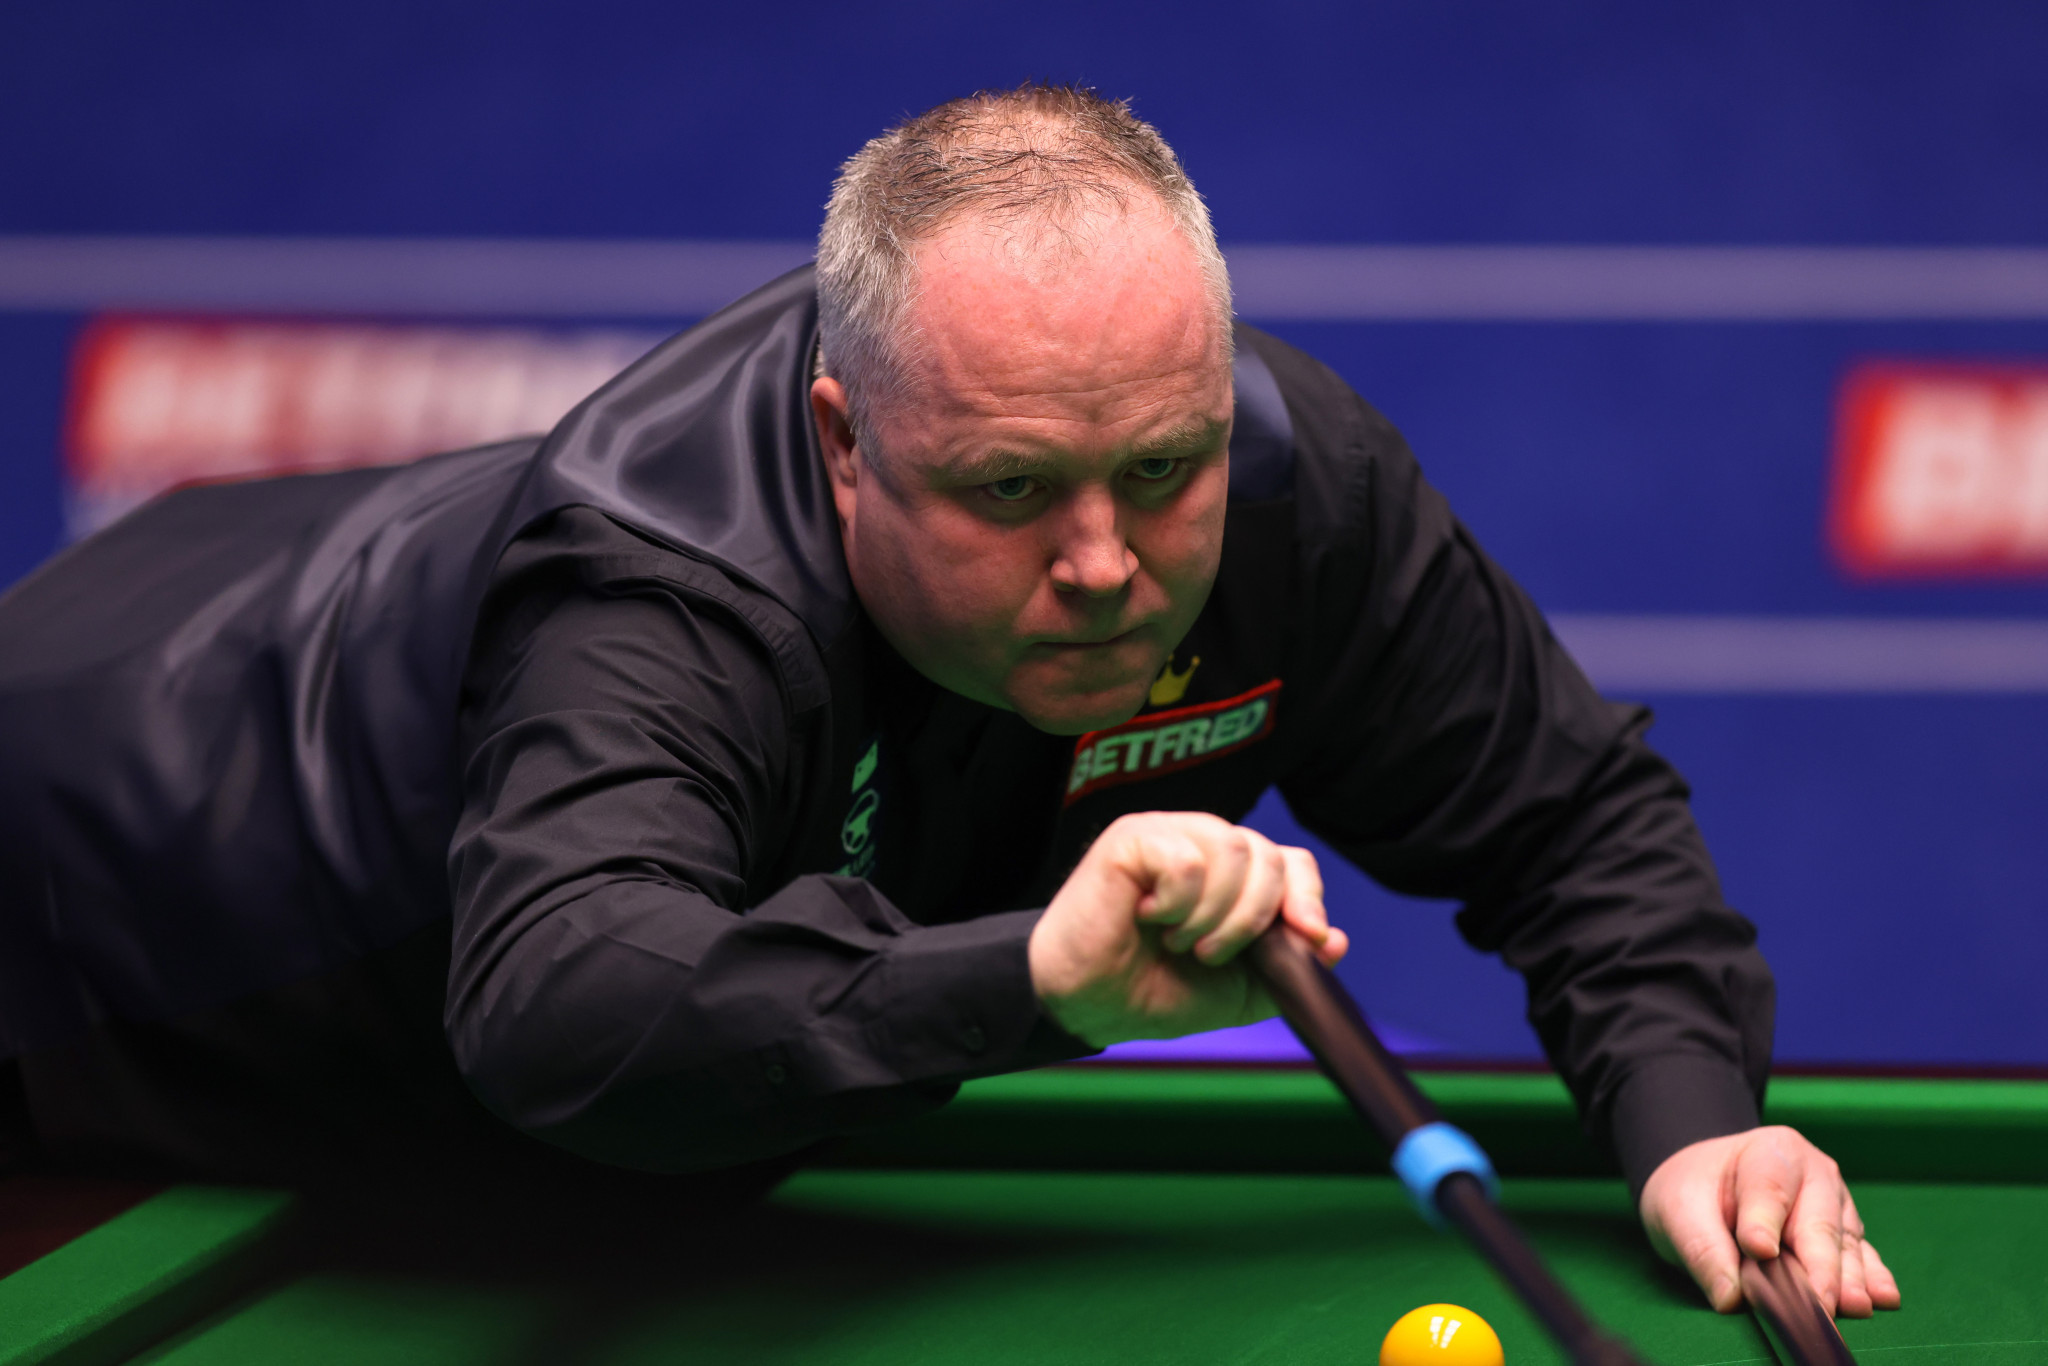 Four-time champion Higgins battles back to advance at World Snooker Championship